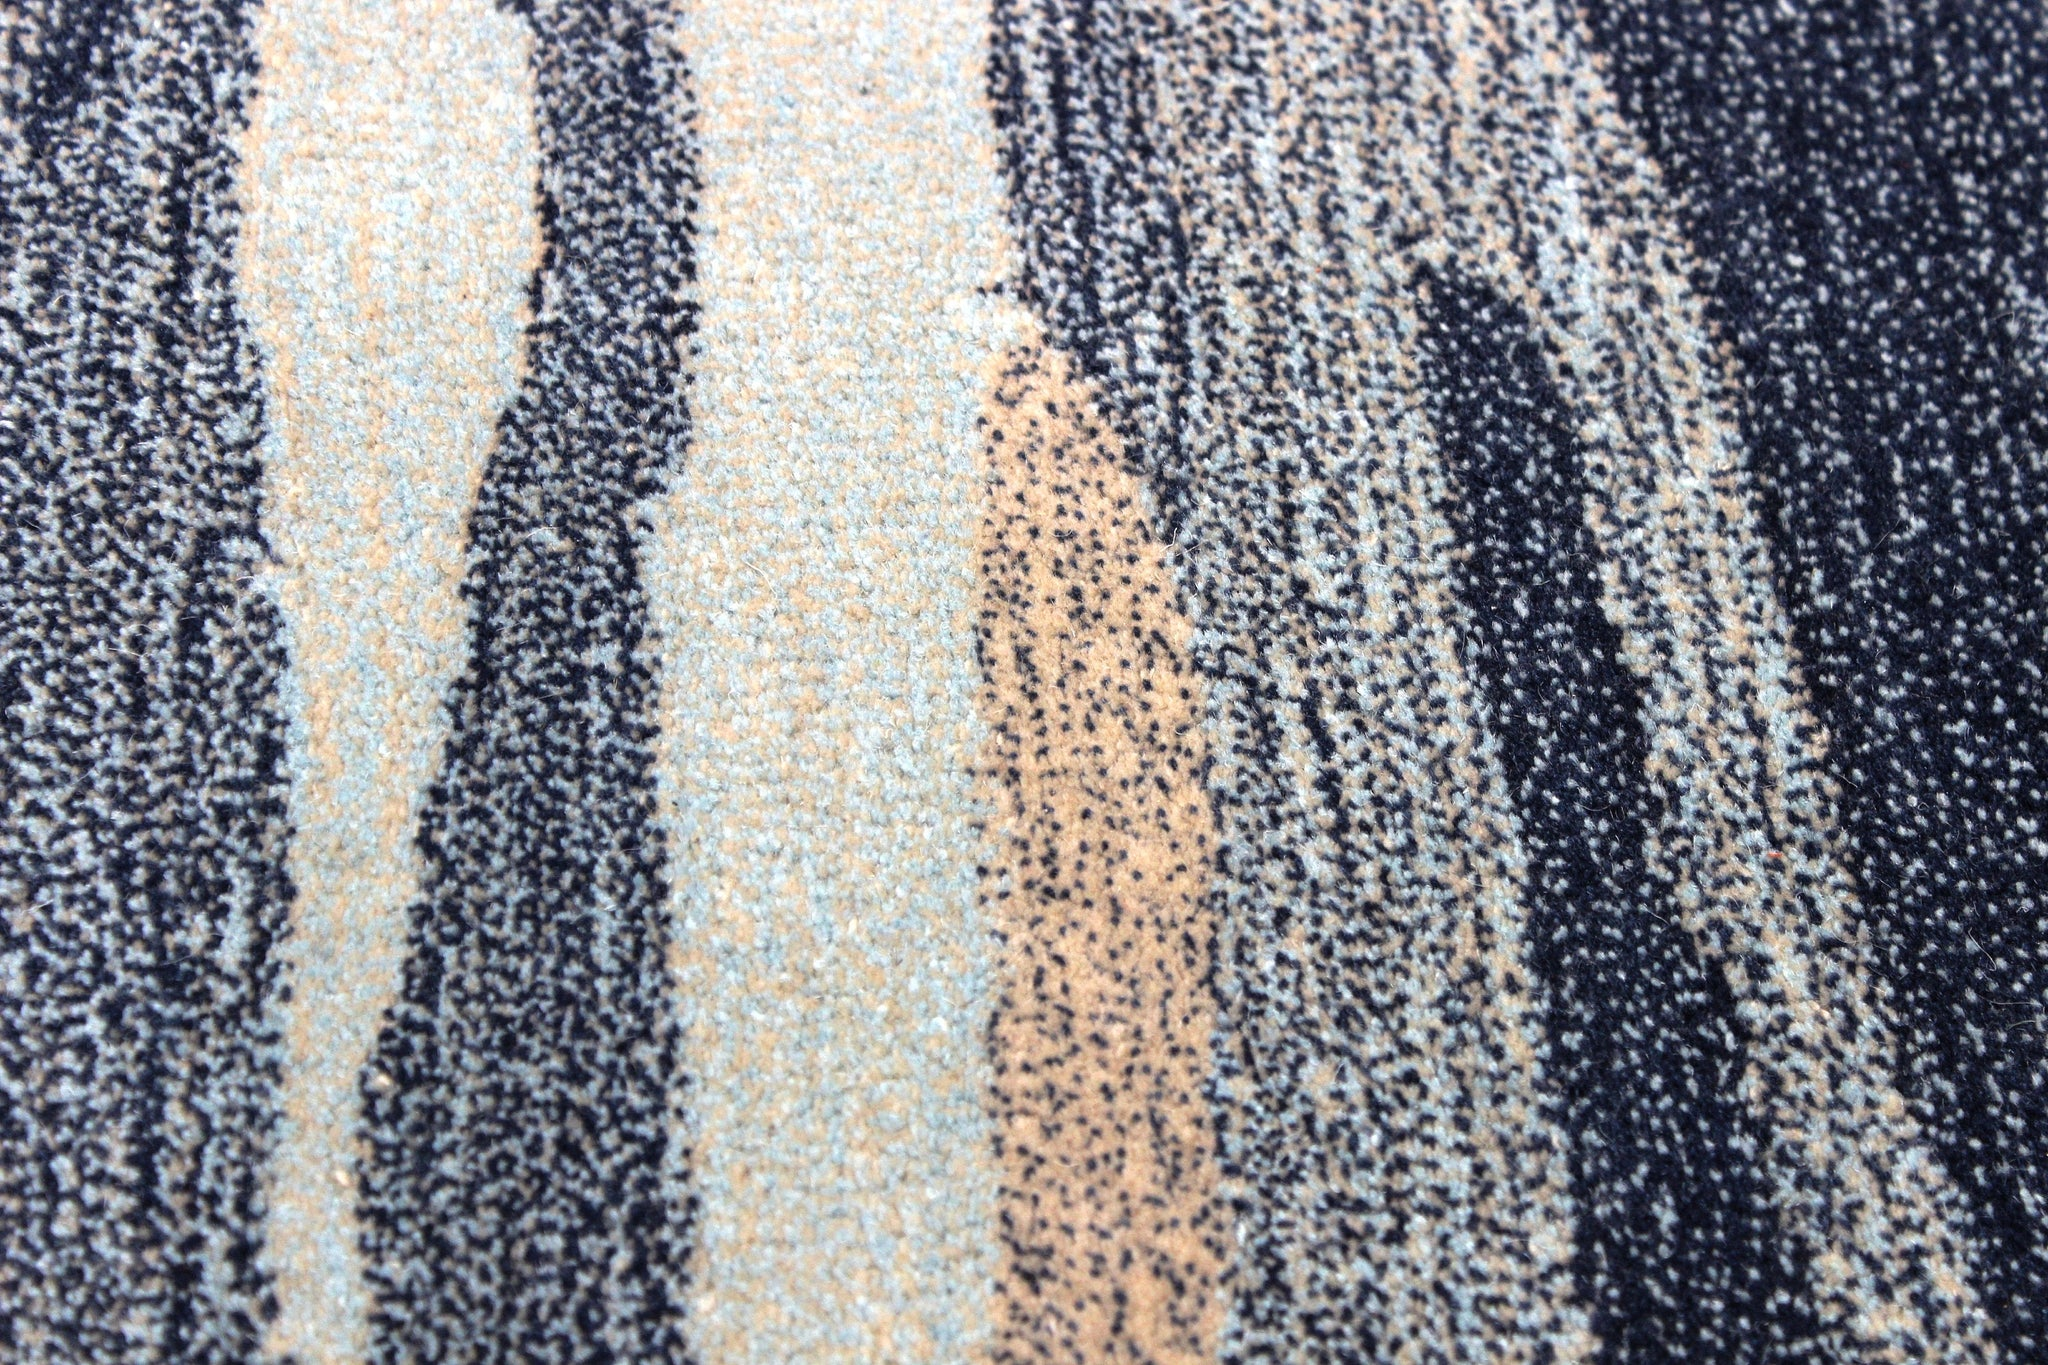 Blue rock handmade area rug by verve hand-made